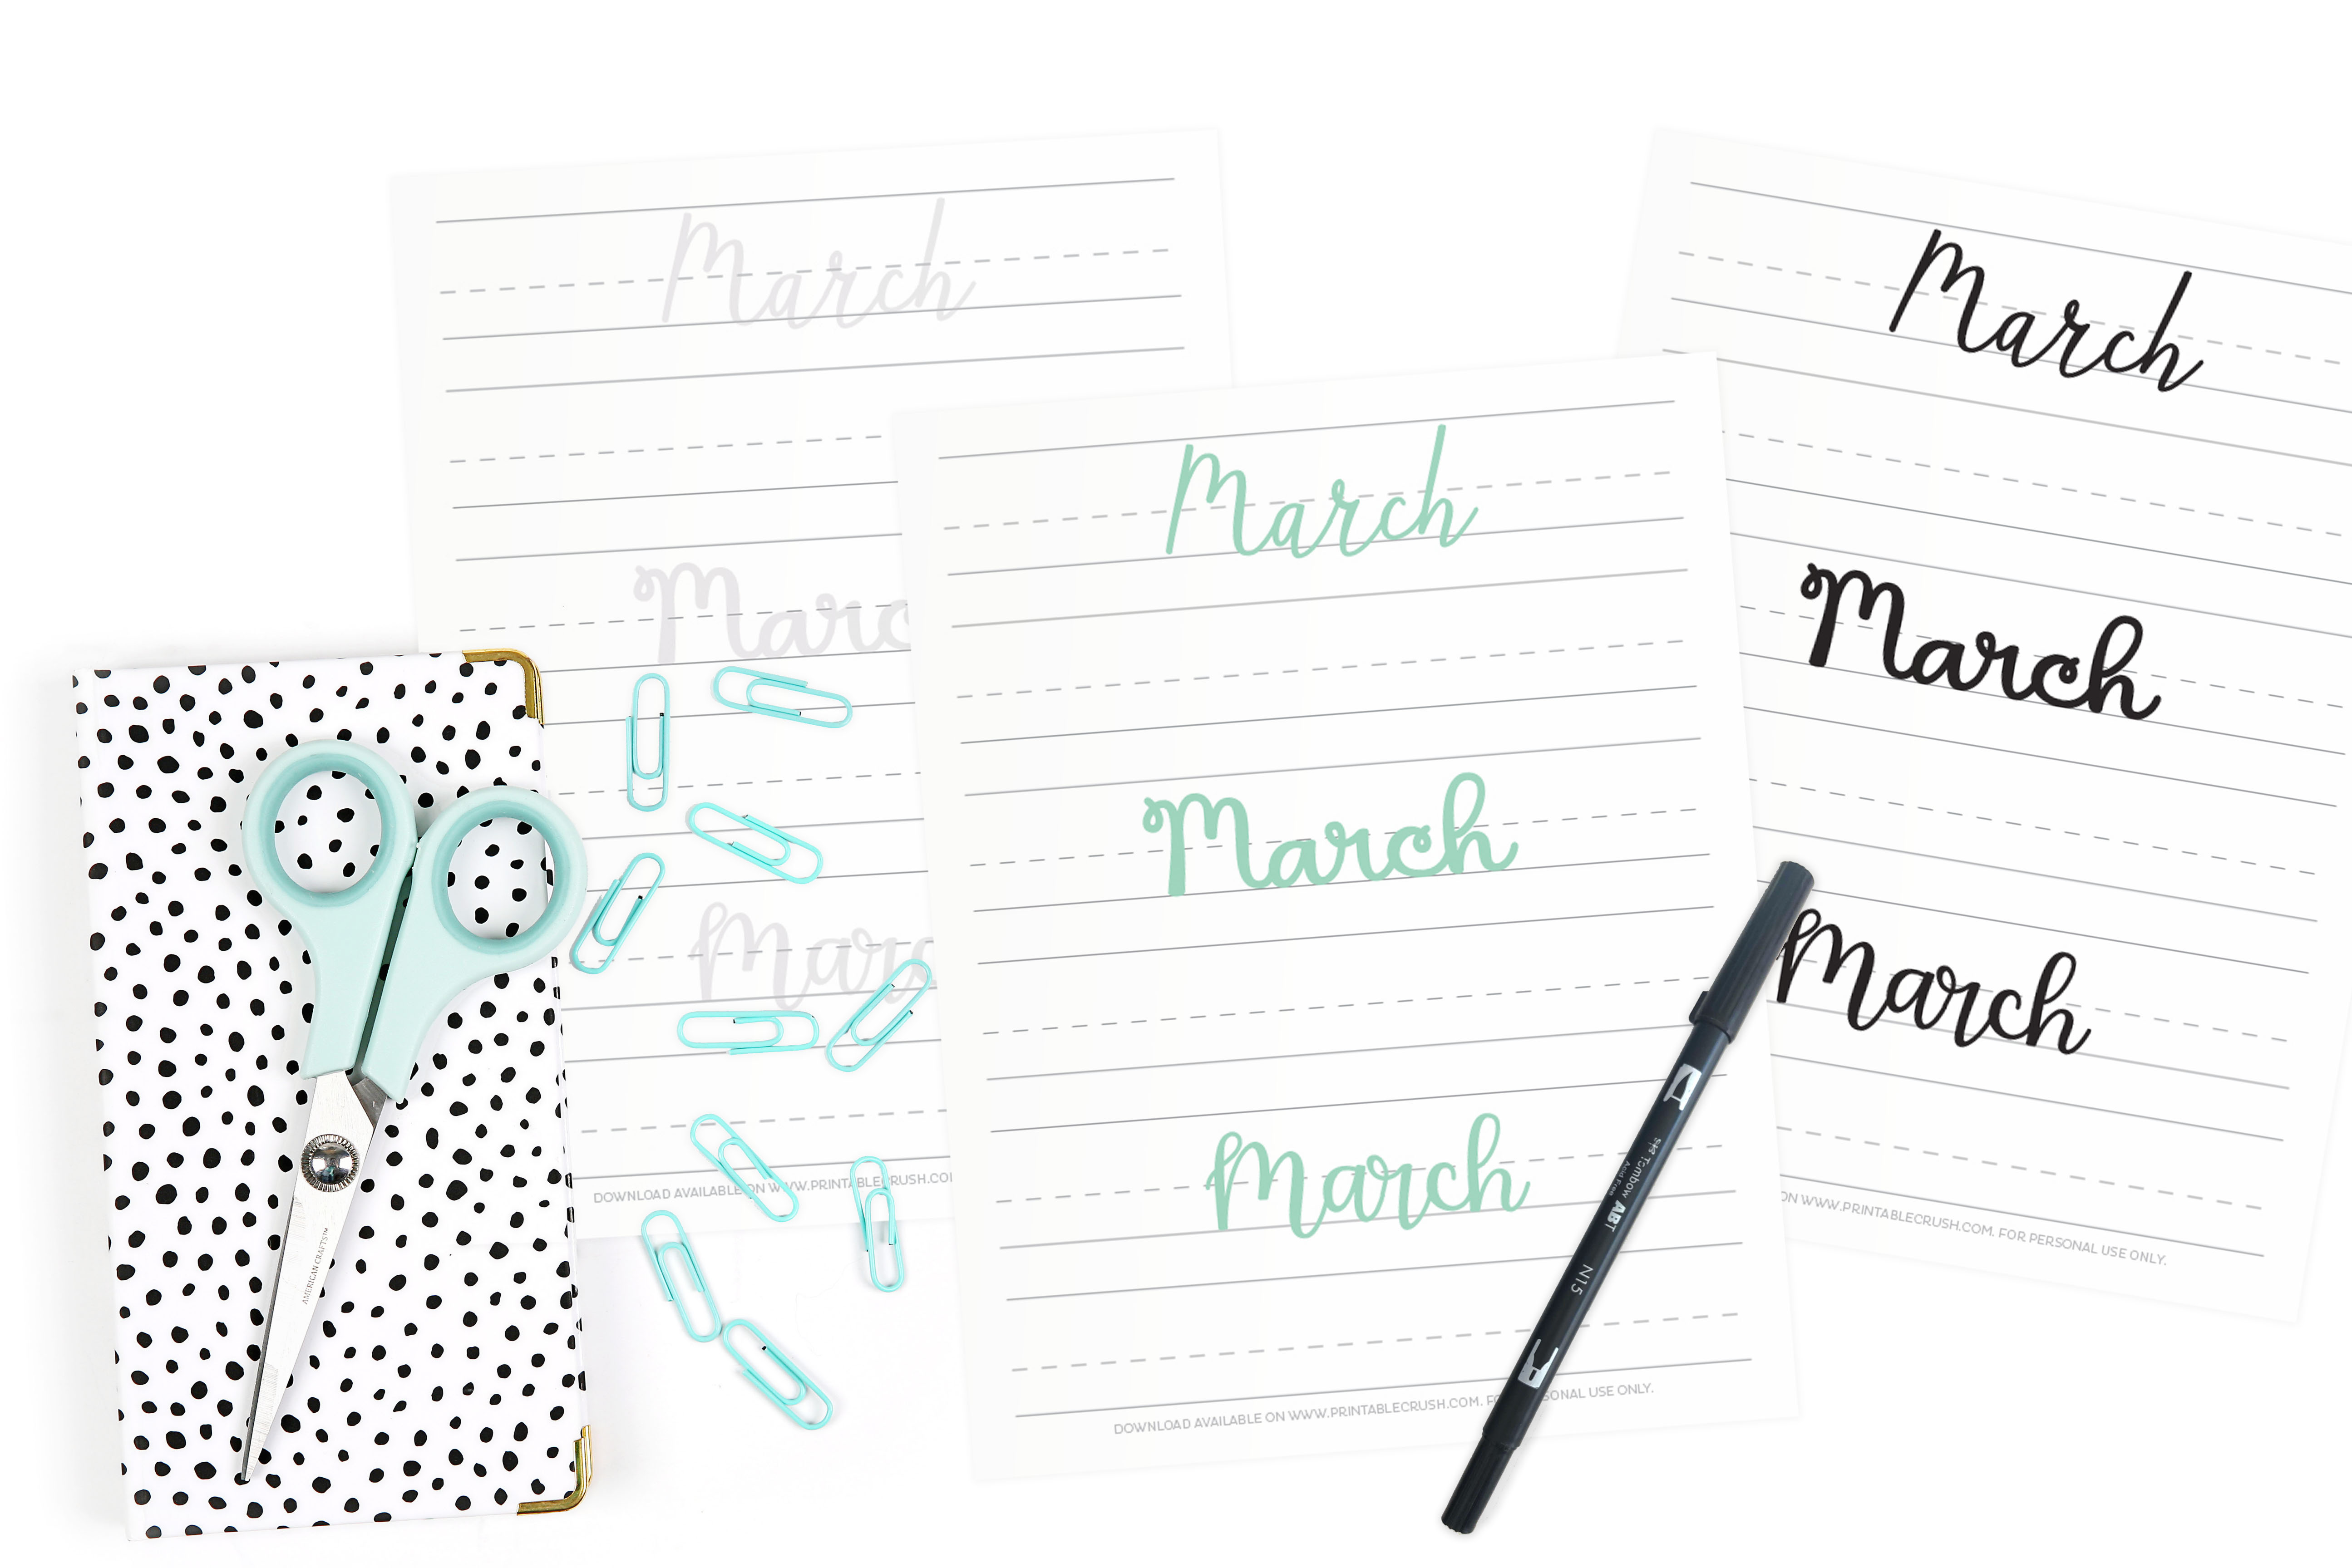 Start to learn hand lettering with these March Hand Lettering Prompts.